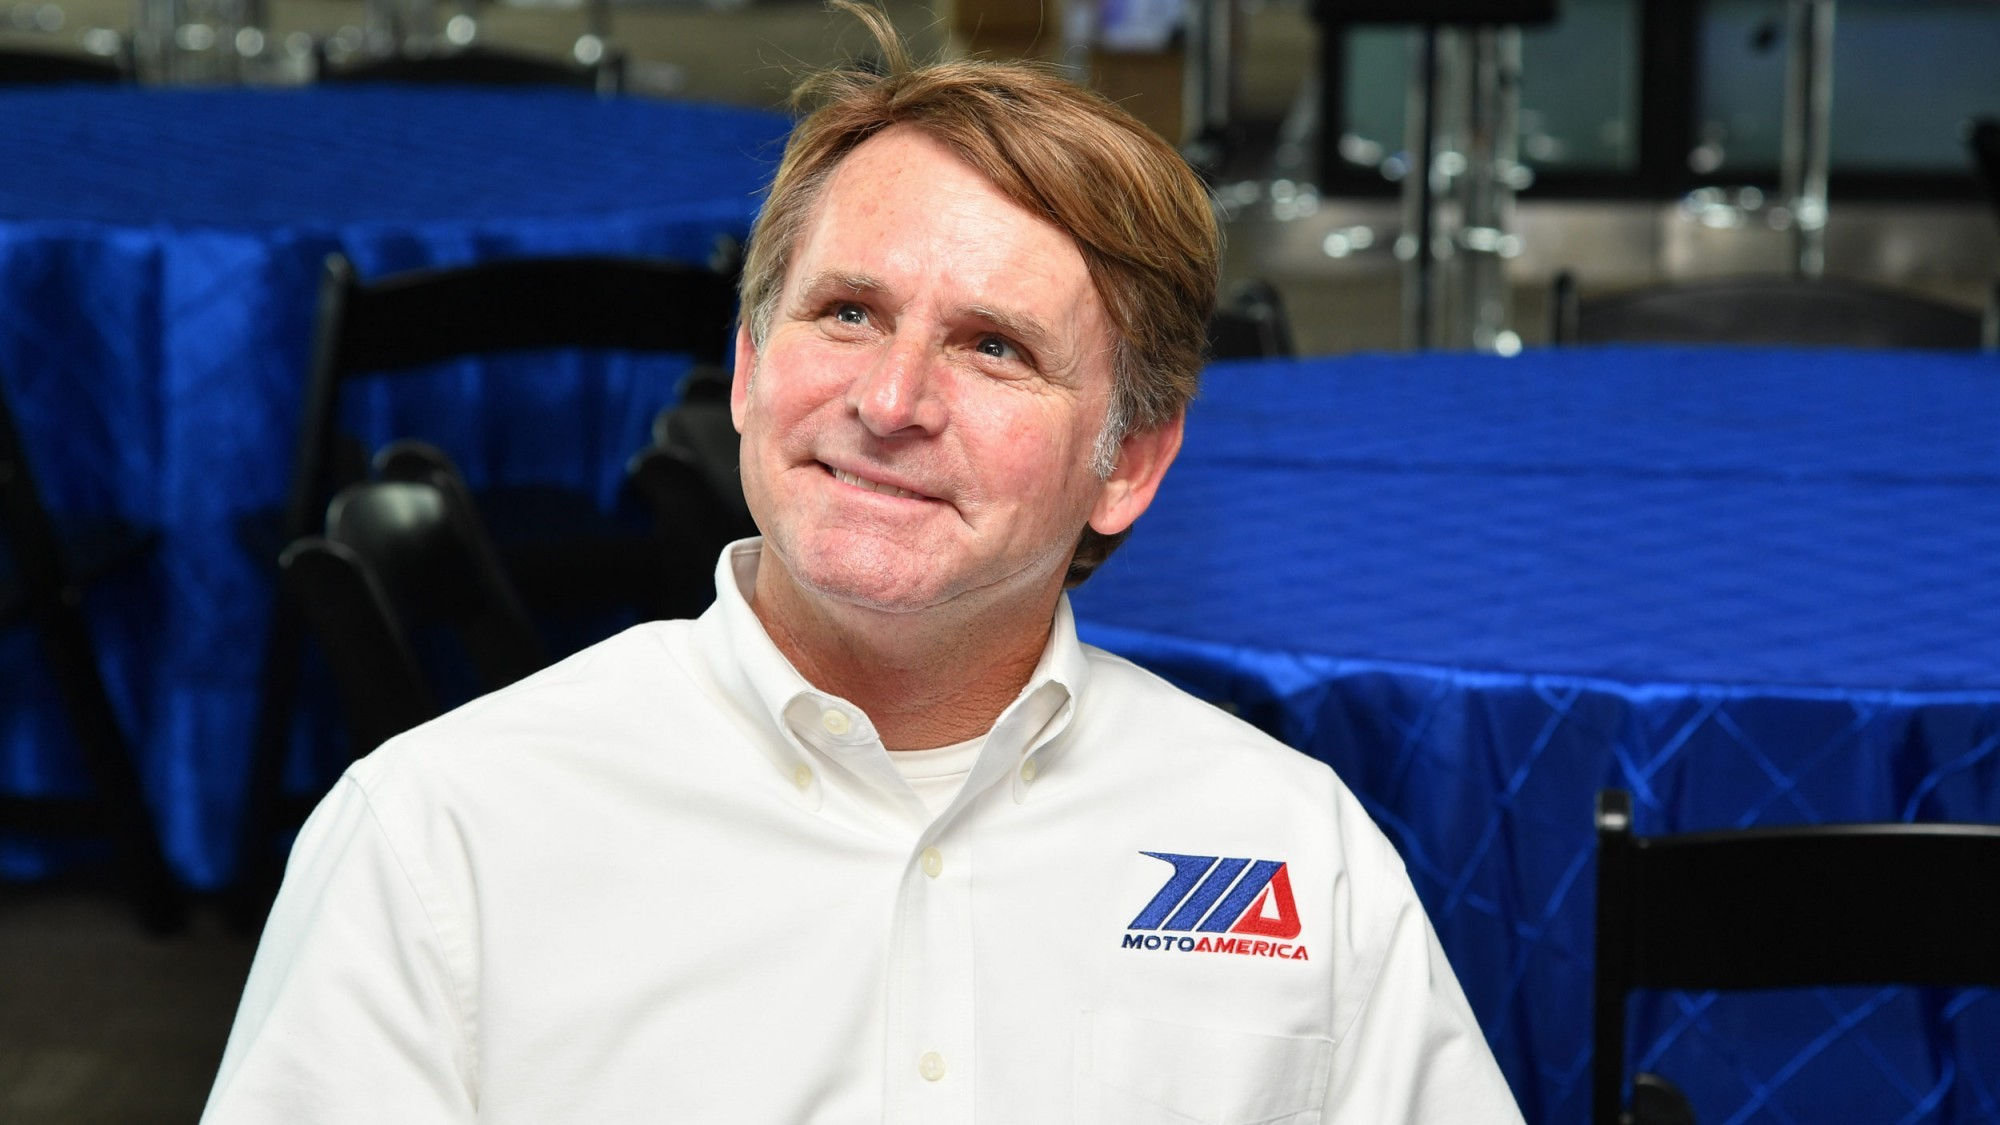 A view of Wayne Rainey via bringing interest in superbike and supersport motorcycle racing back into mainstream attention in the USA and Canada.